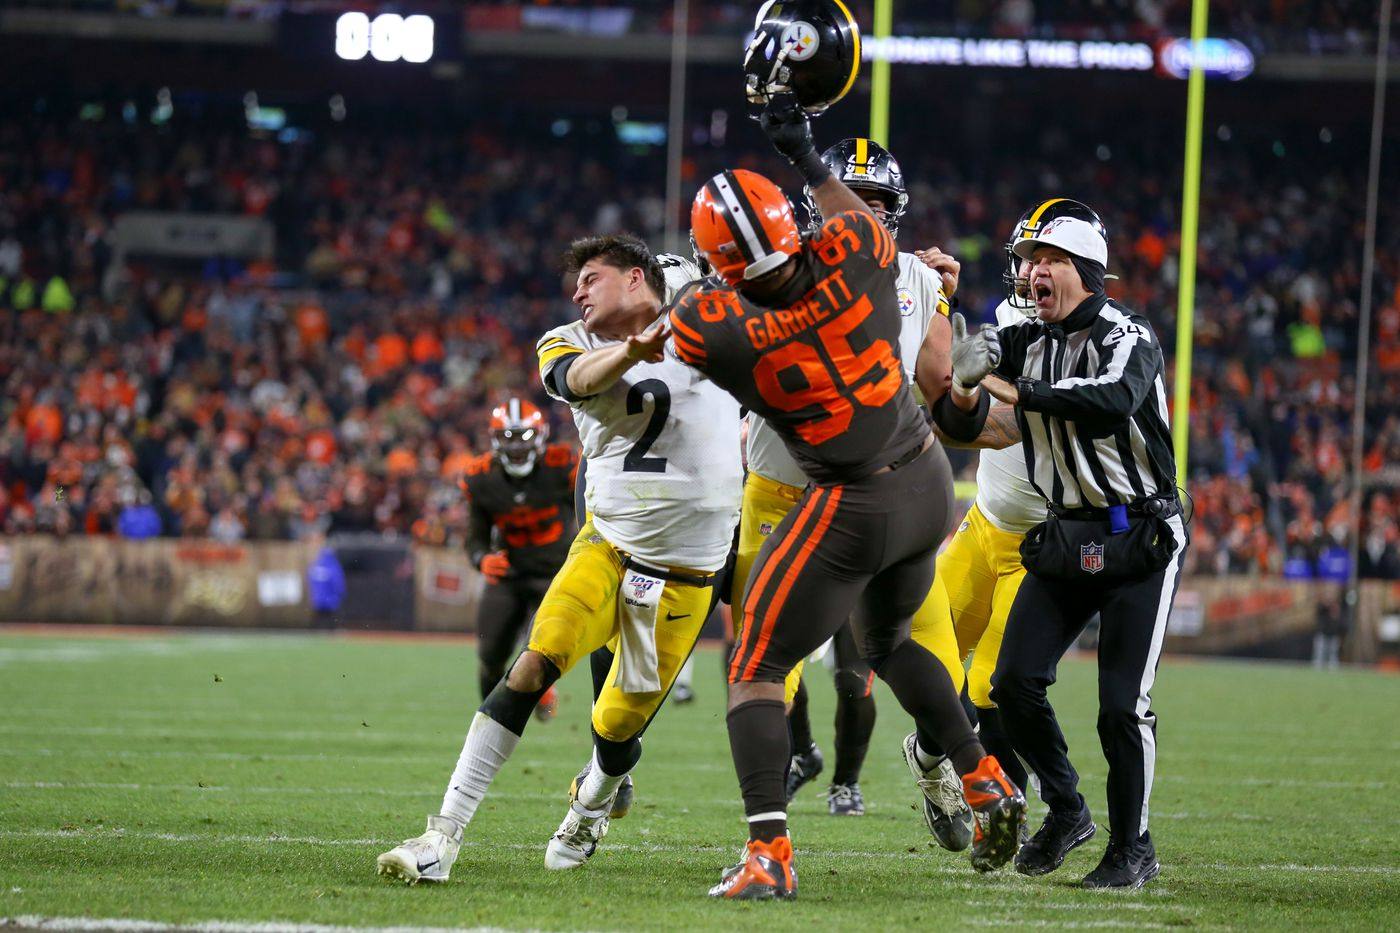 The Myles Garrett Vs Mason Rudolph Steelers Browns Fight